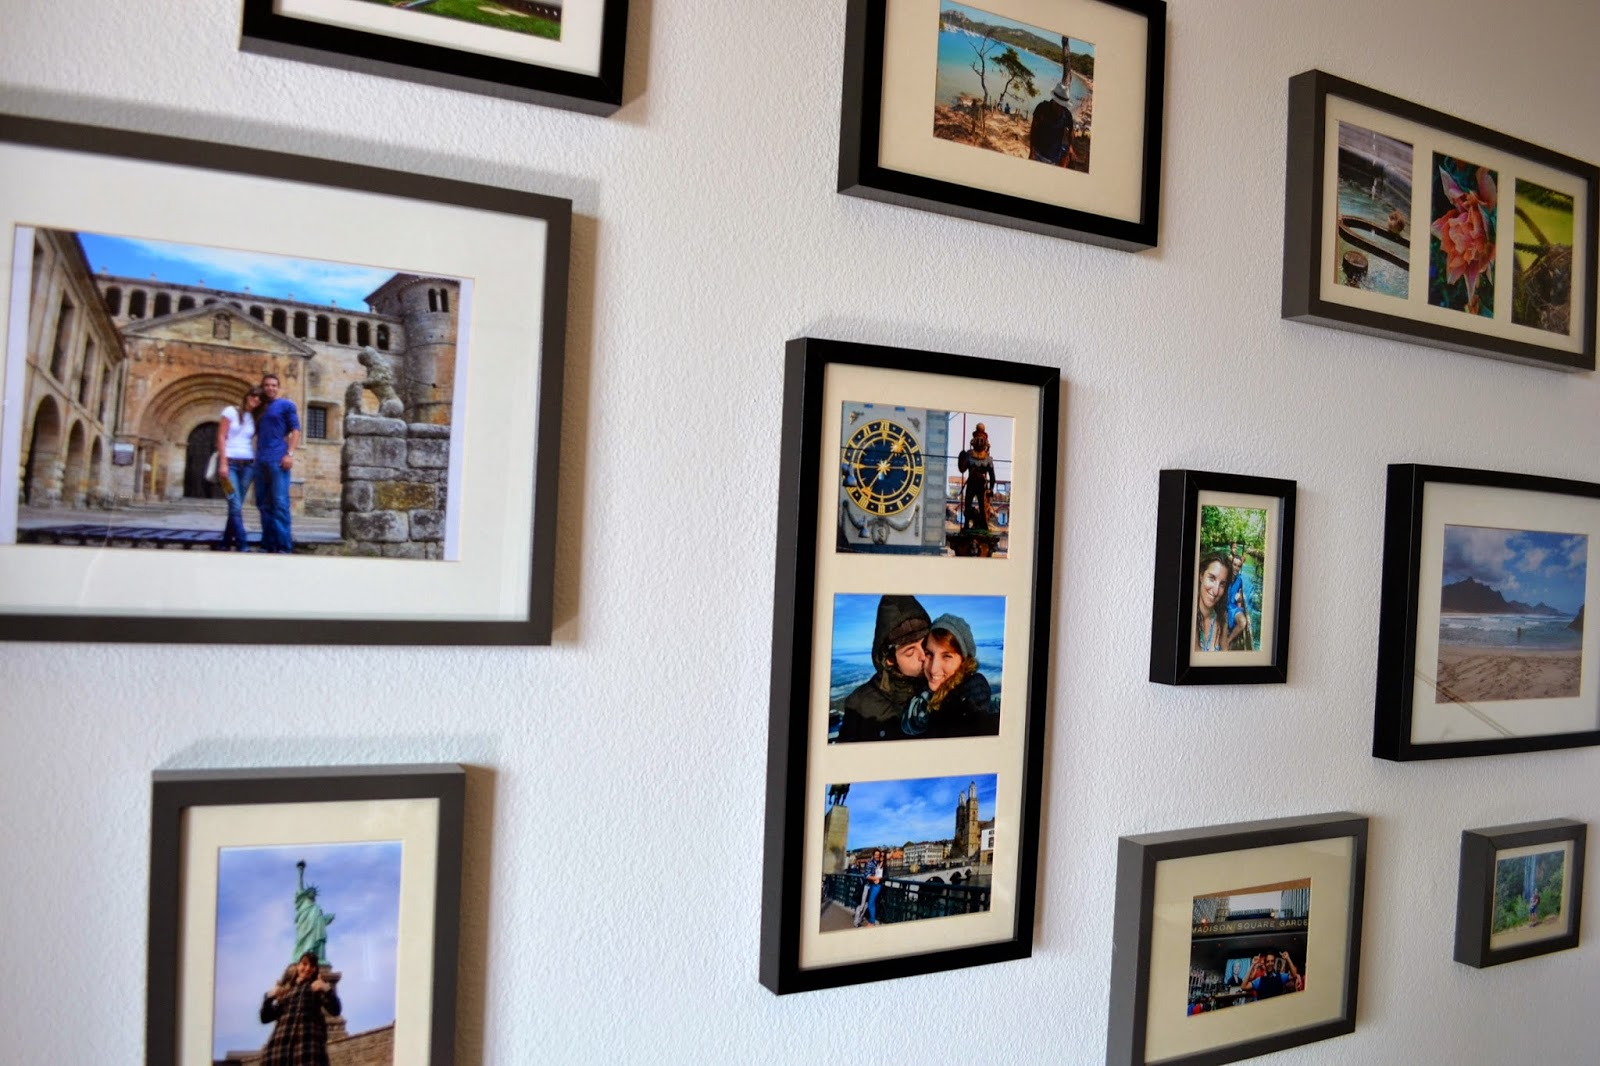 Como Decorar Una Pared Con Fotos Ideas Para Decorar Paredes Cómo Componer Tu Propio Photo